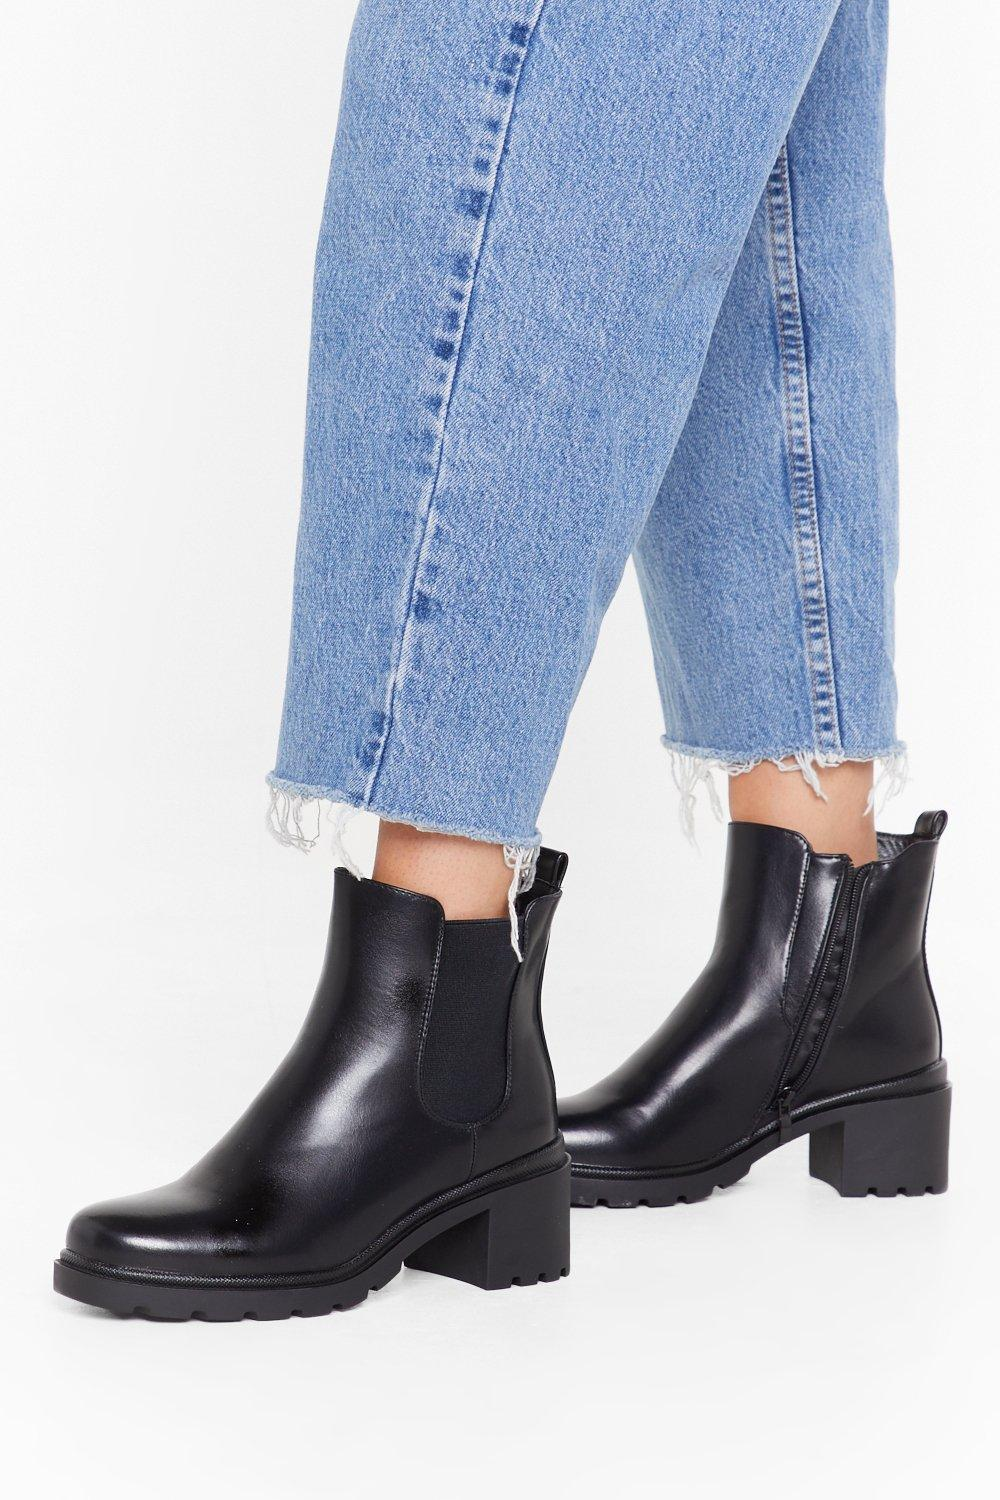 Image of Around the Block Faux Leather Chelsea Boots